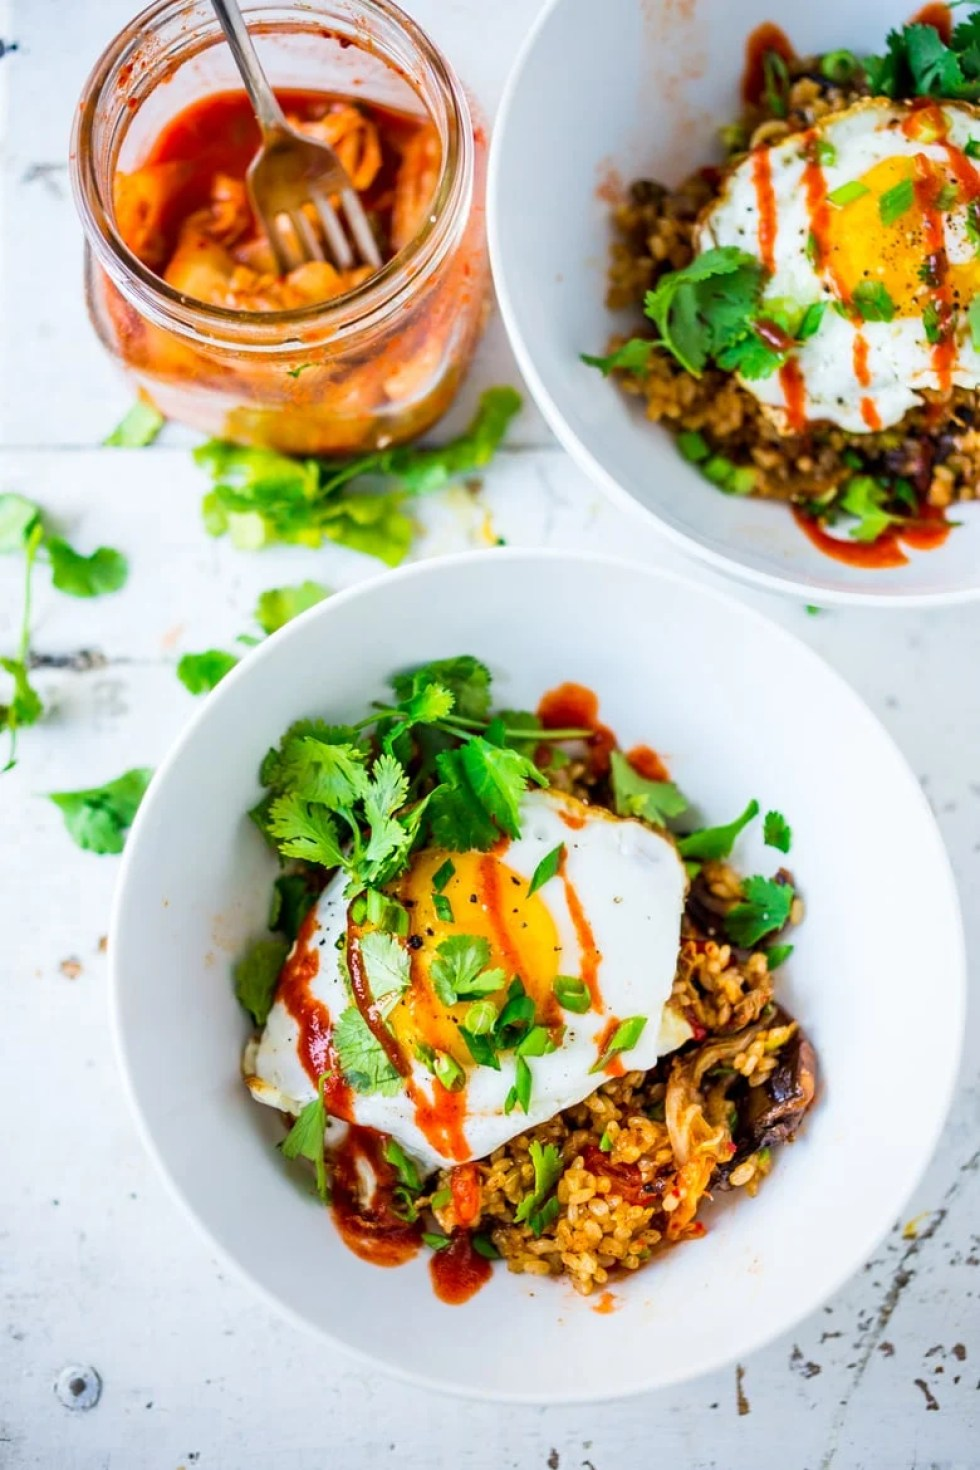 Kimchi Fried Rice, packed with flavor & veggies, topped with an Egg ( or Tofu). Swap out Cauliflower Rice for Low Carb! Healthy and flavorful! |www.feastingathome.com